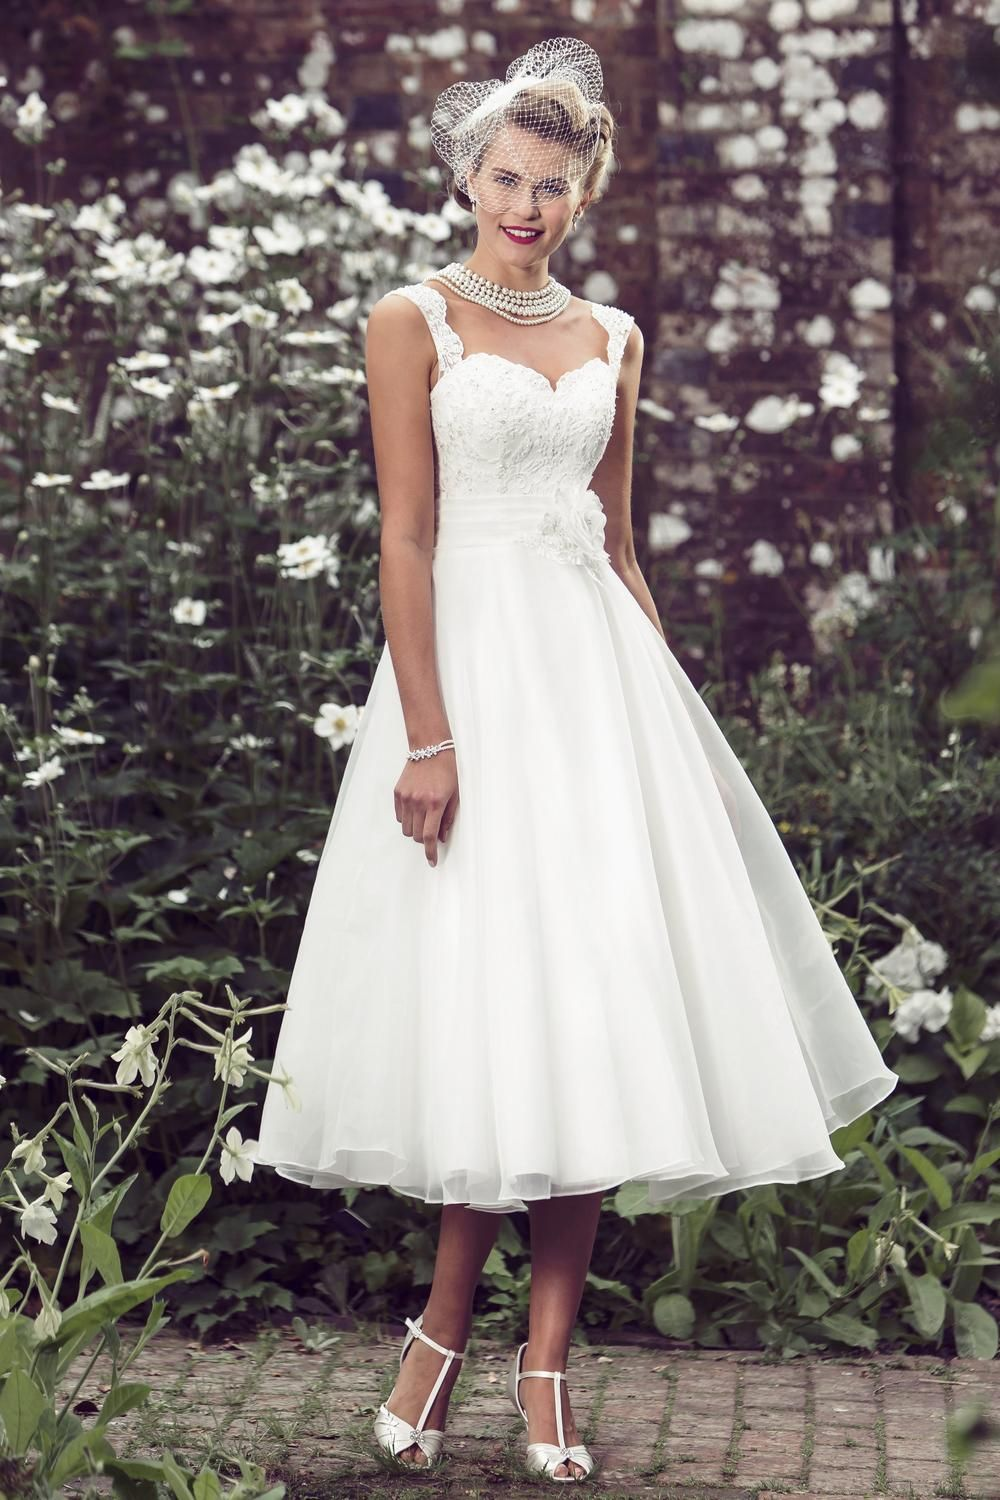 Lori G Wedding Dresses : Wedding dresses lori g bridal